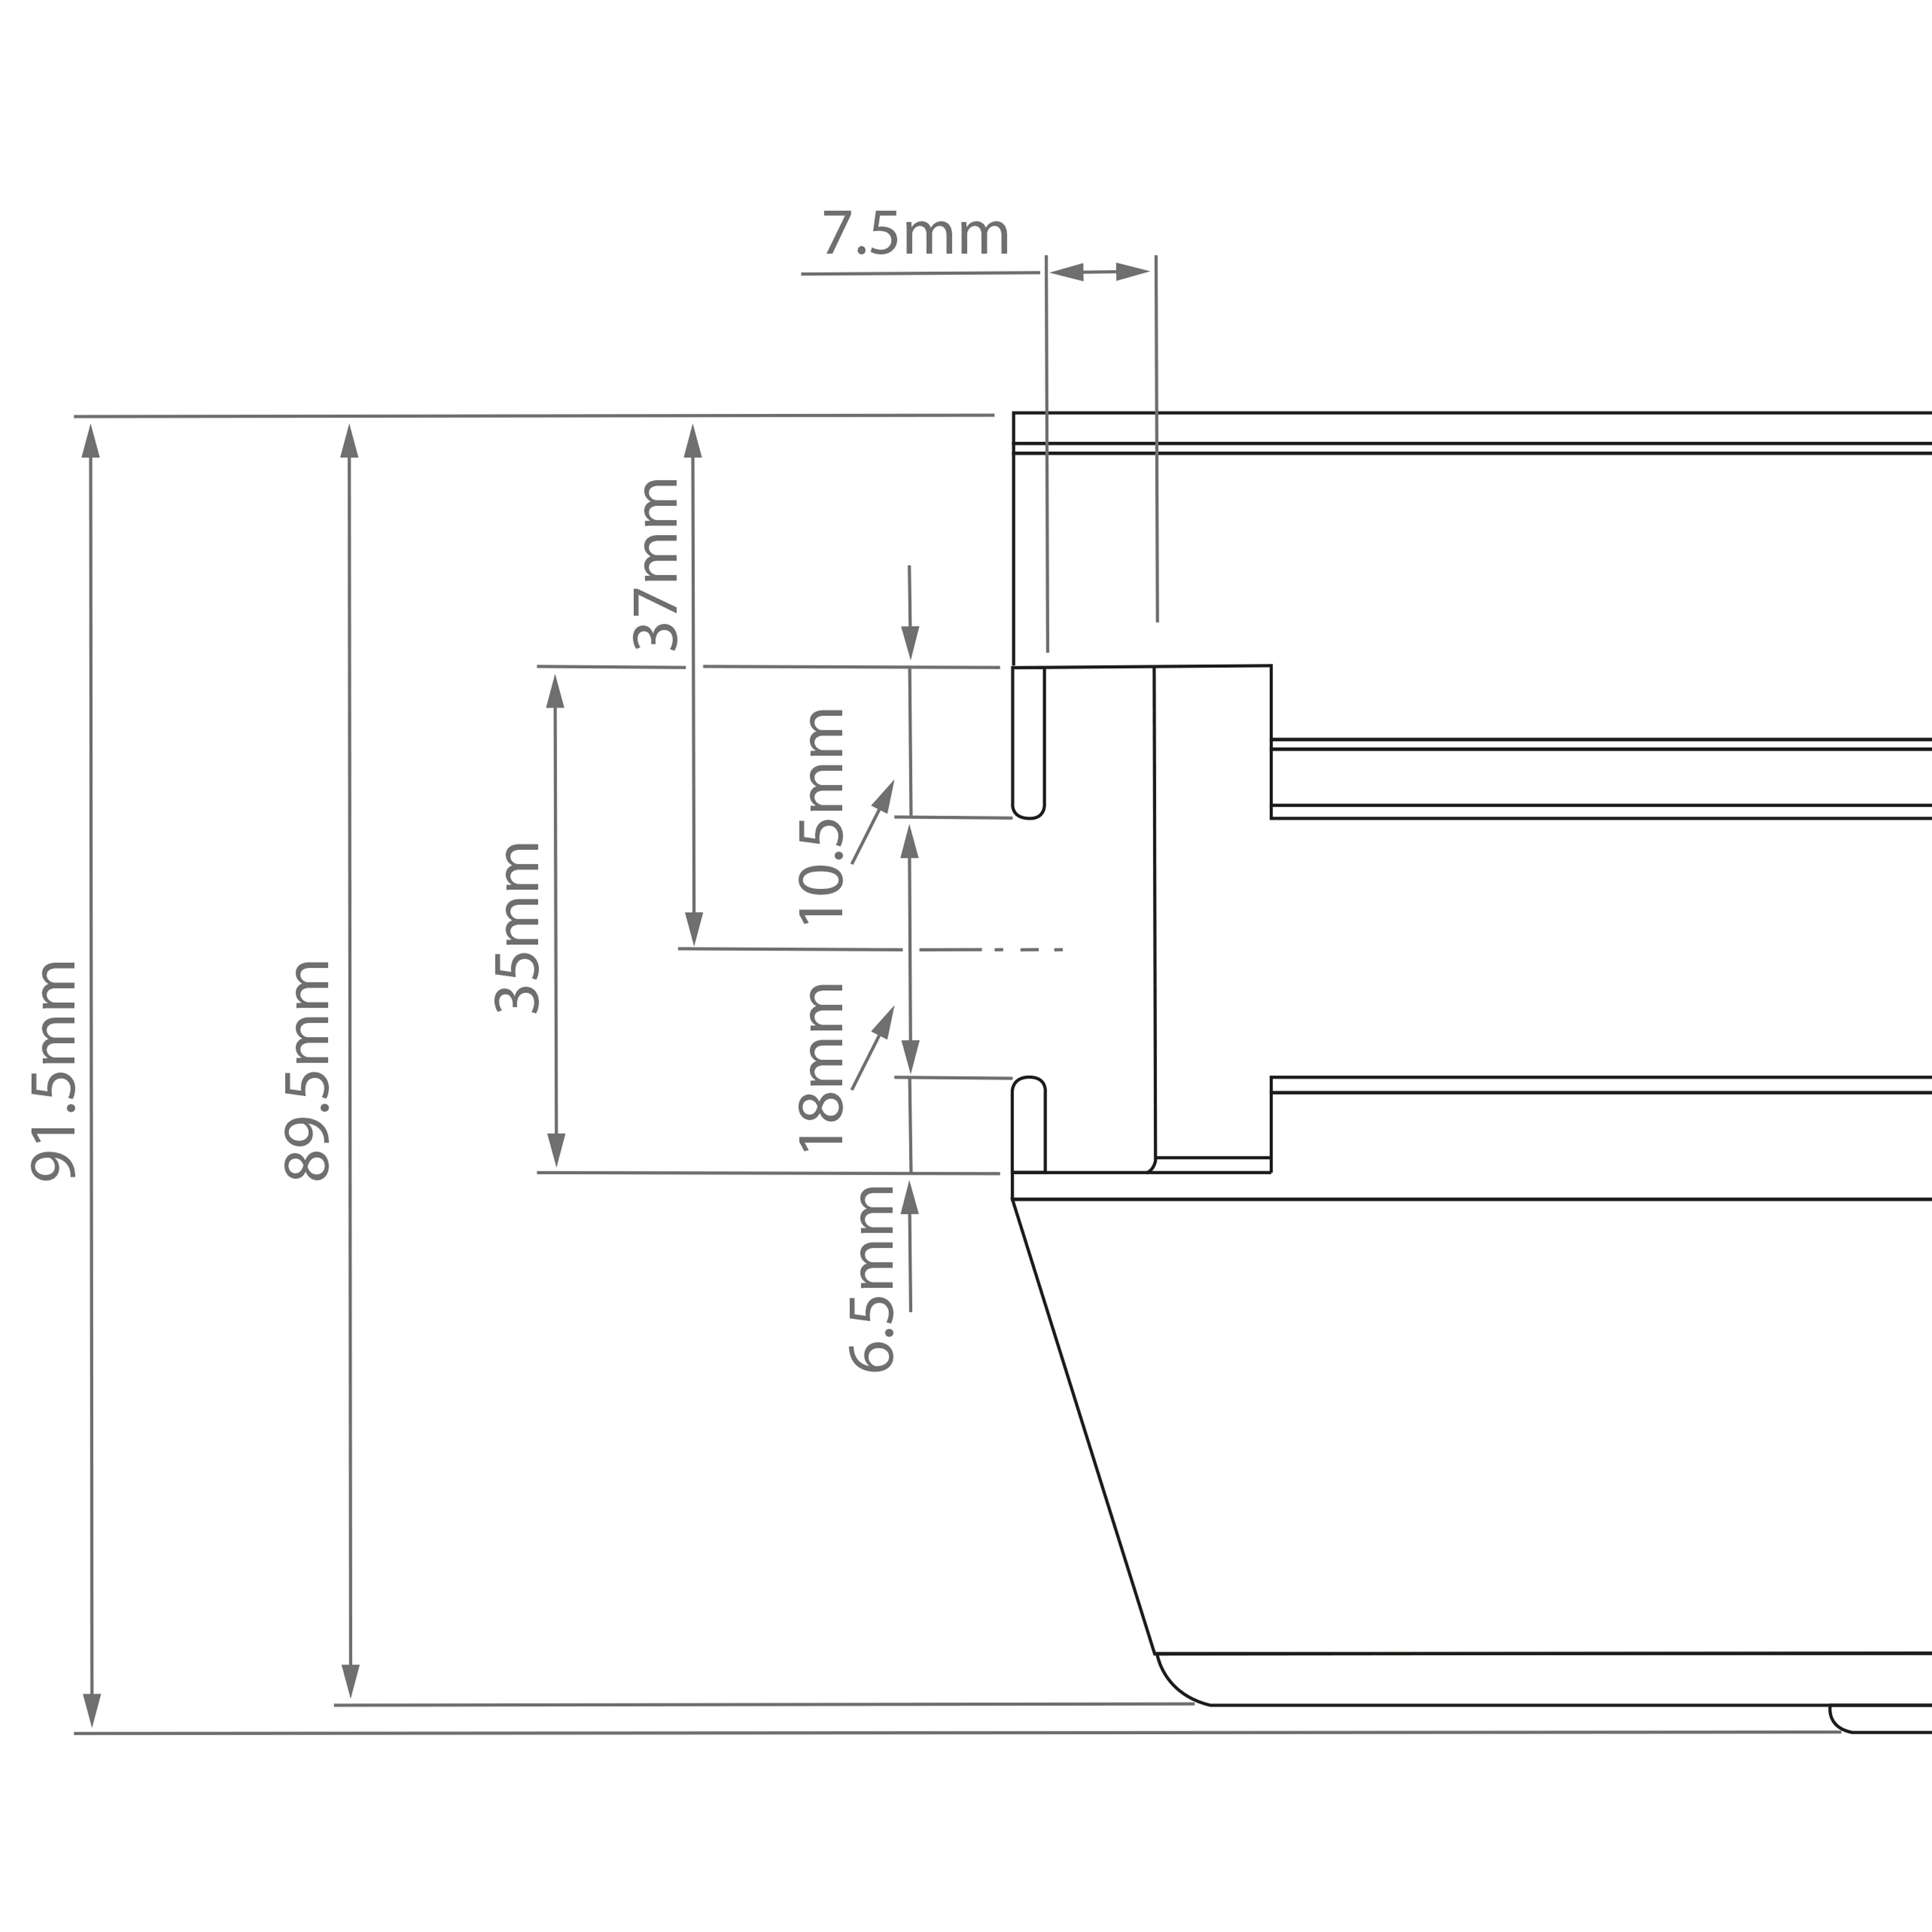 StagingCrossSectionNew_LD